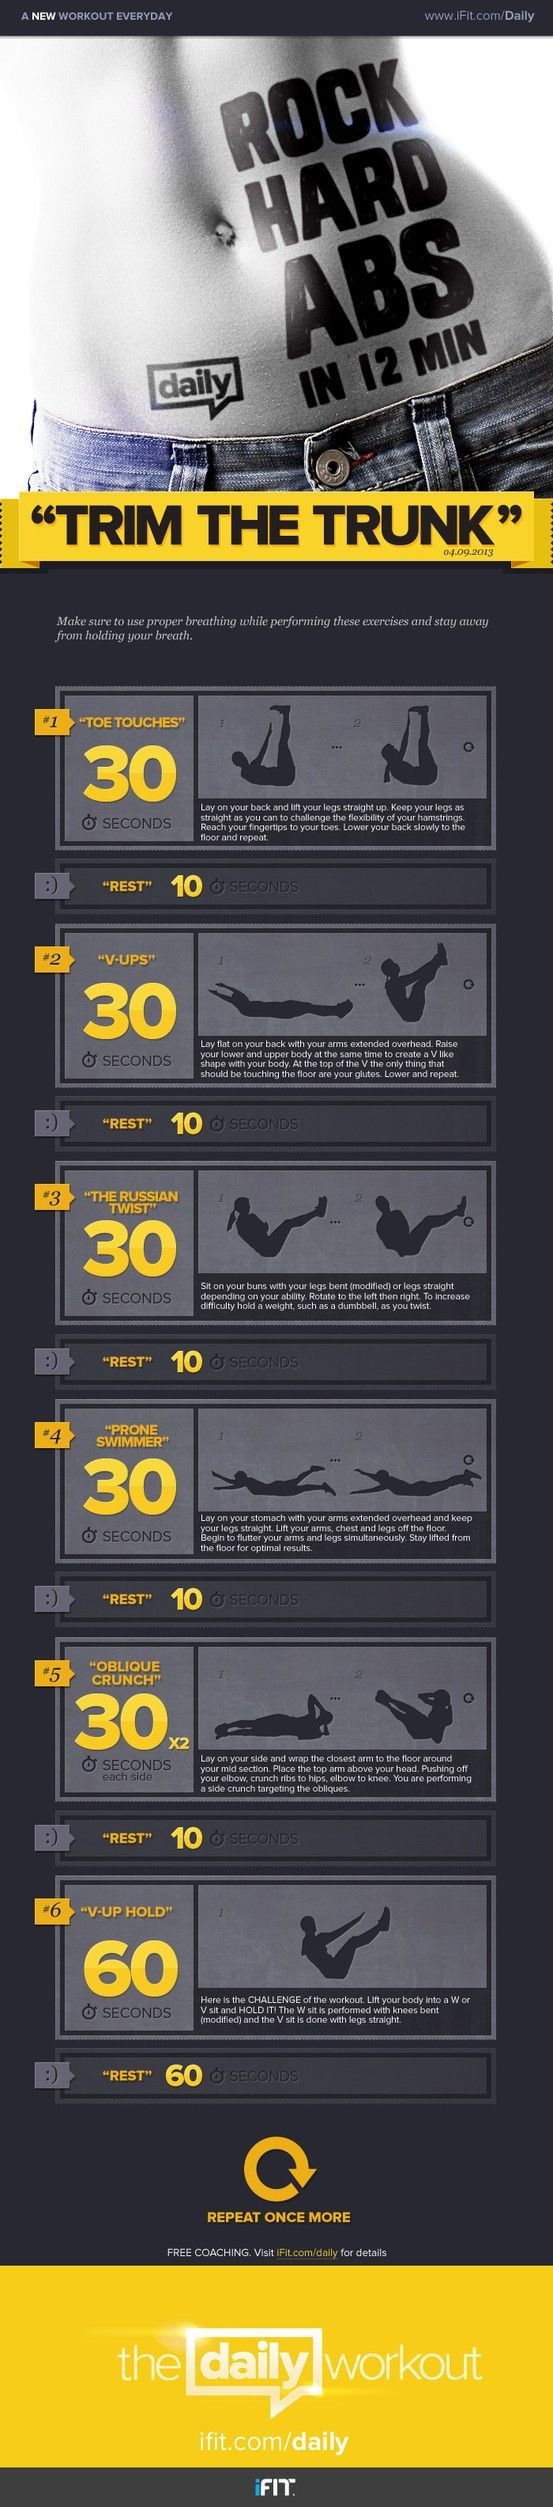 I loved this fitness workout and I even clicked the link so I could do it with the trainer!! So much fun! #Fitness #Workout